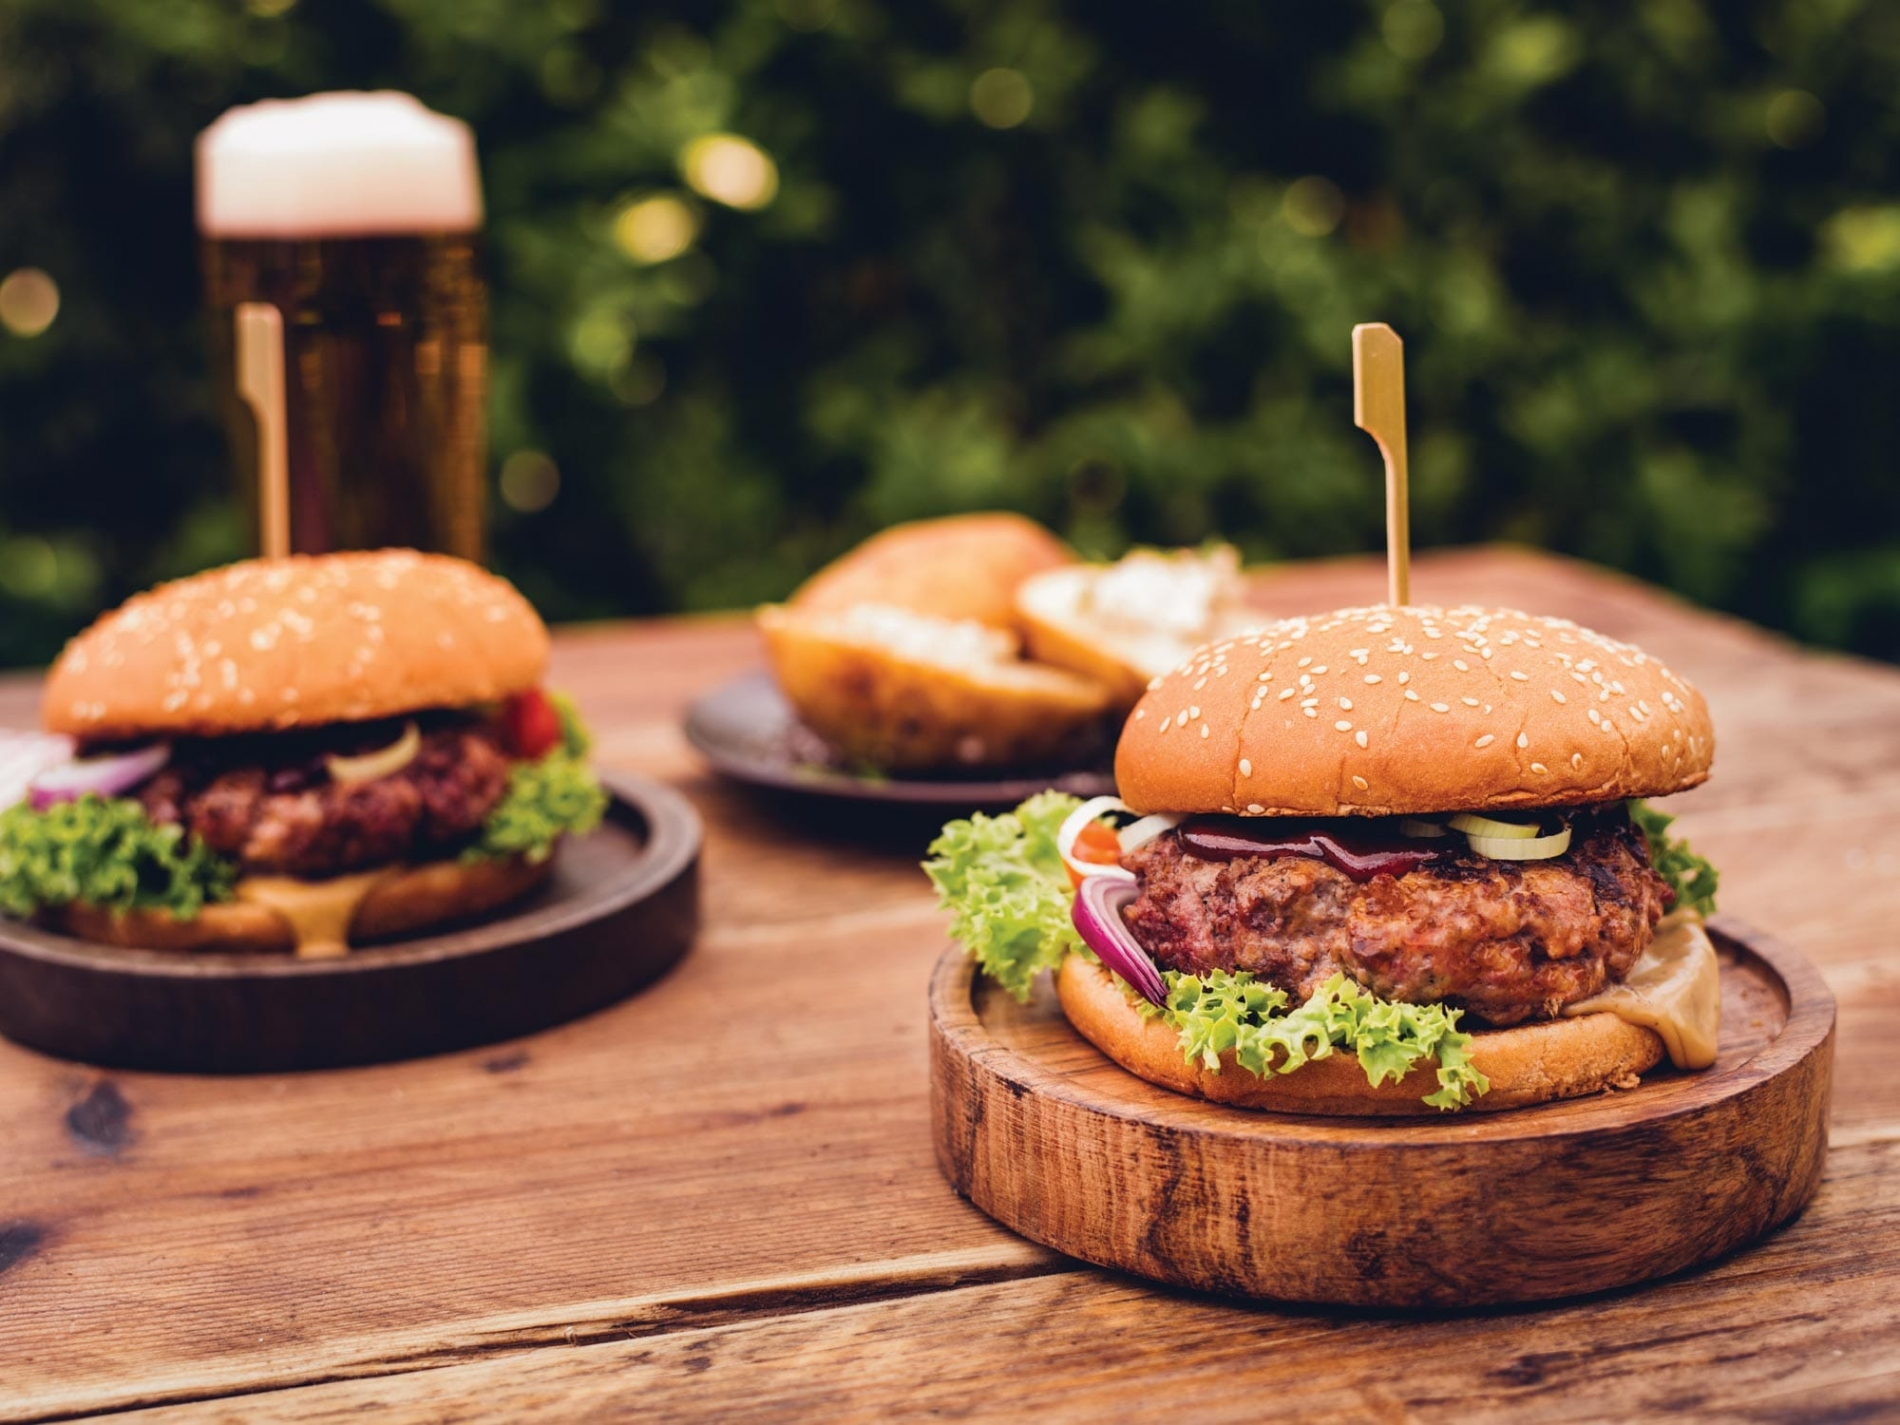 Tasty barbecued burgers